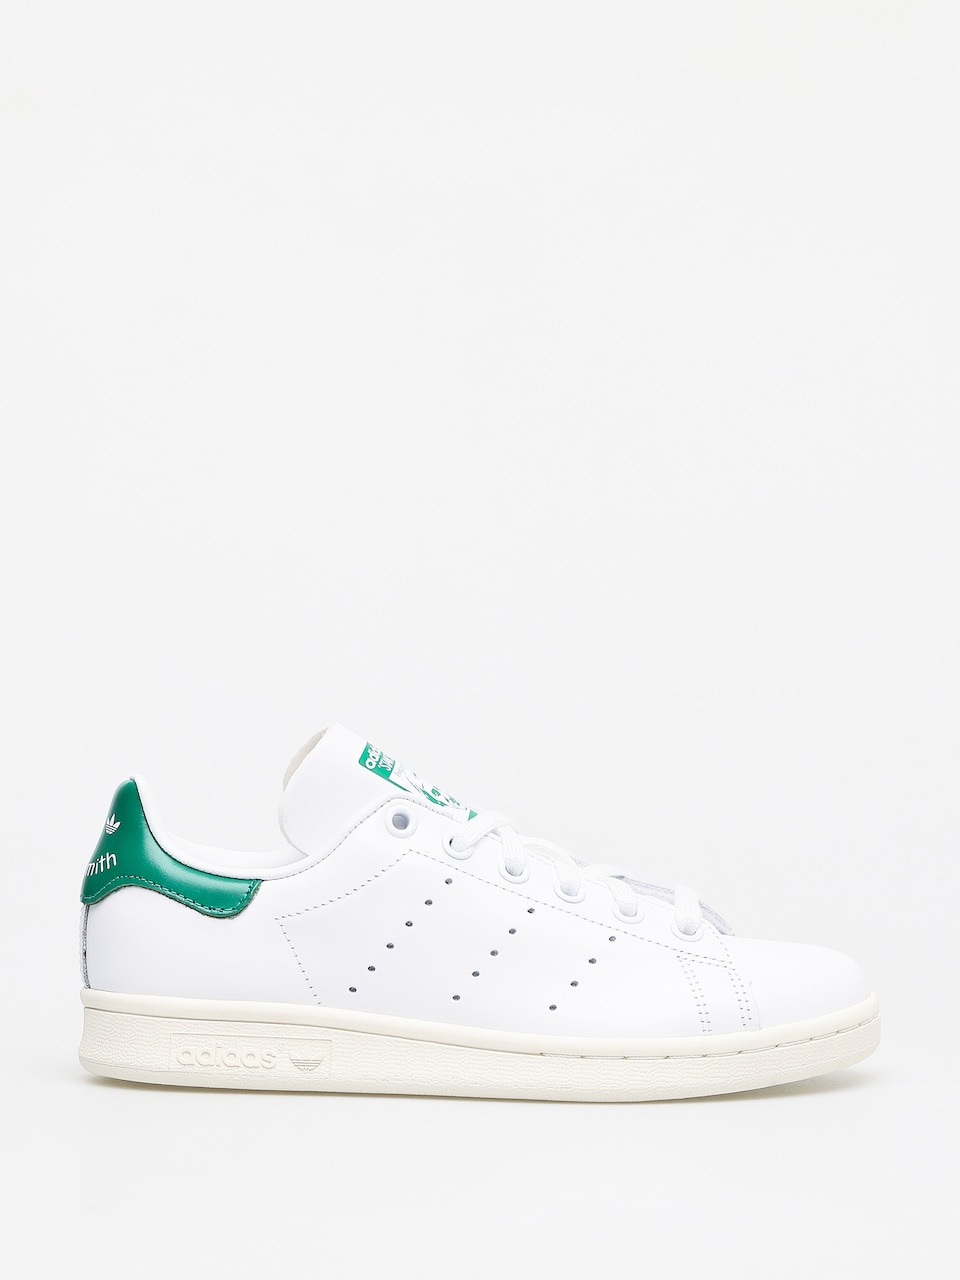 100% authentic free shipping sneakers for cheap adidas | SUPER-SHOP